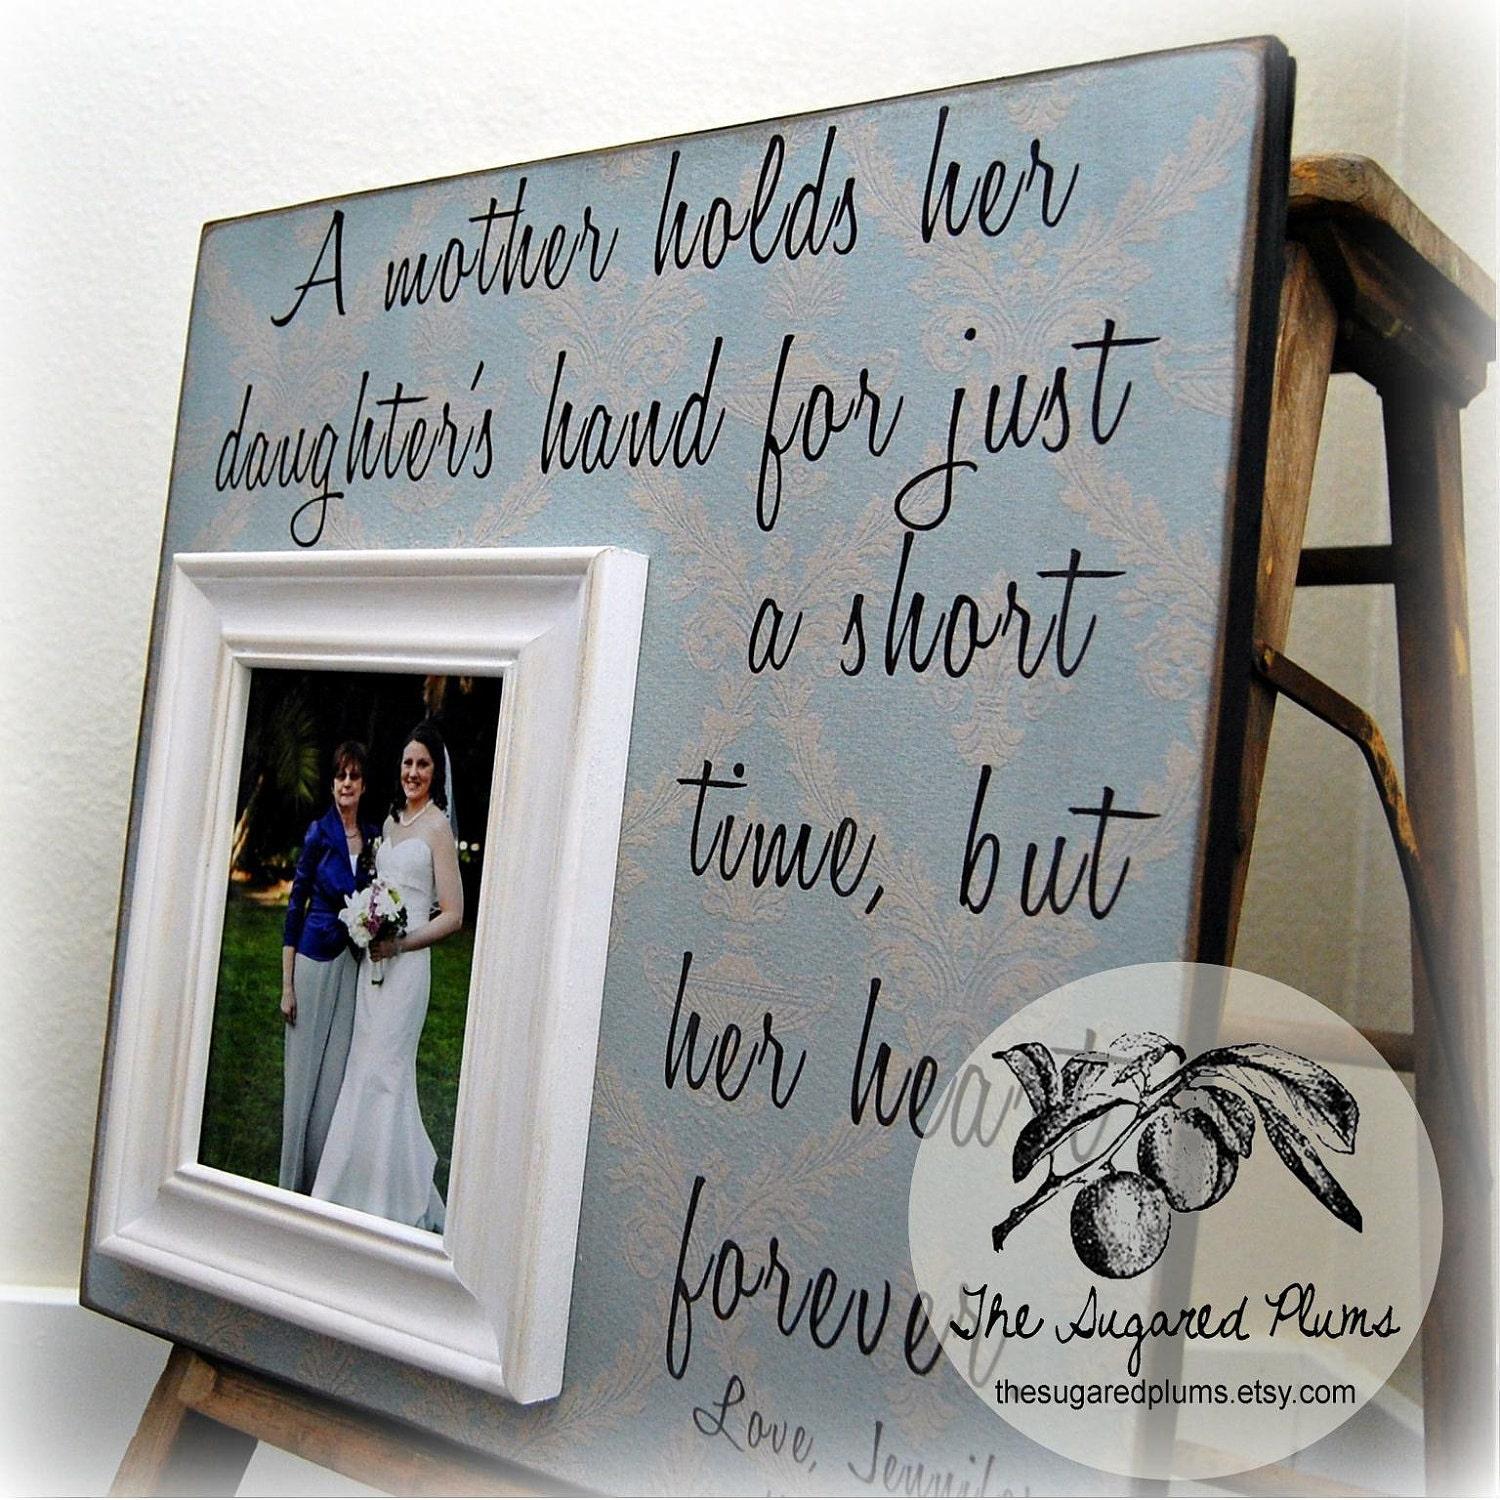 Best Wedding Gifts For Mother Of The Bride : Ideas Wedding Gifts For Mother Of The Bride 1000 images about wedding ...